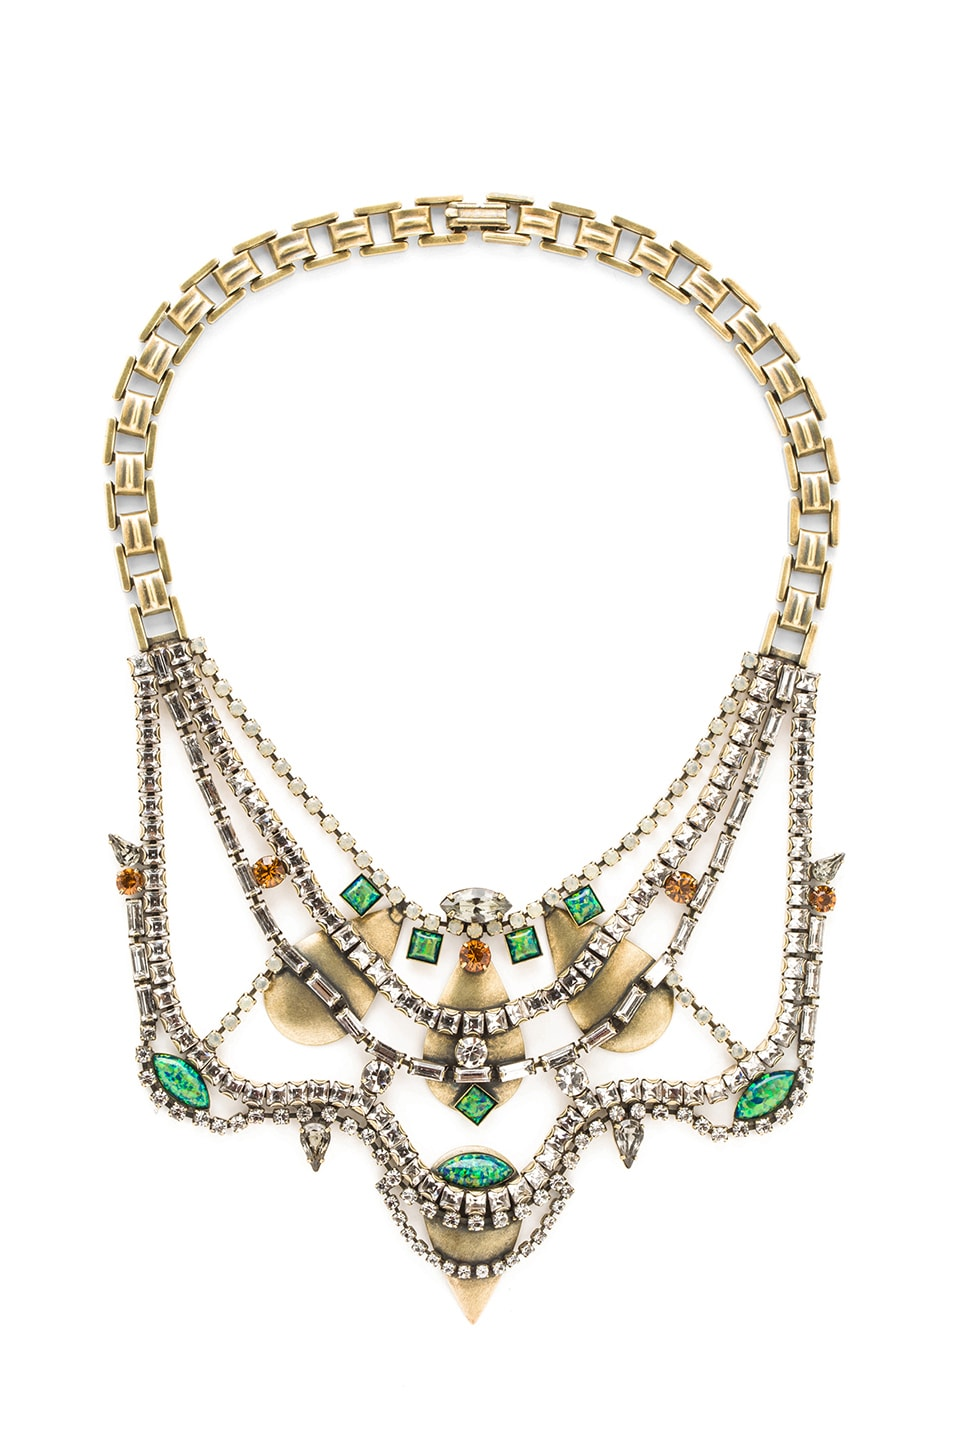 Image 1 of Lionette Shemesh Antique Plated Necklace in Turquoise